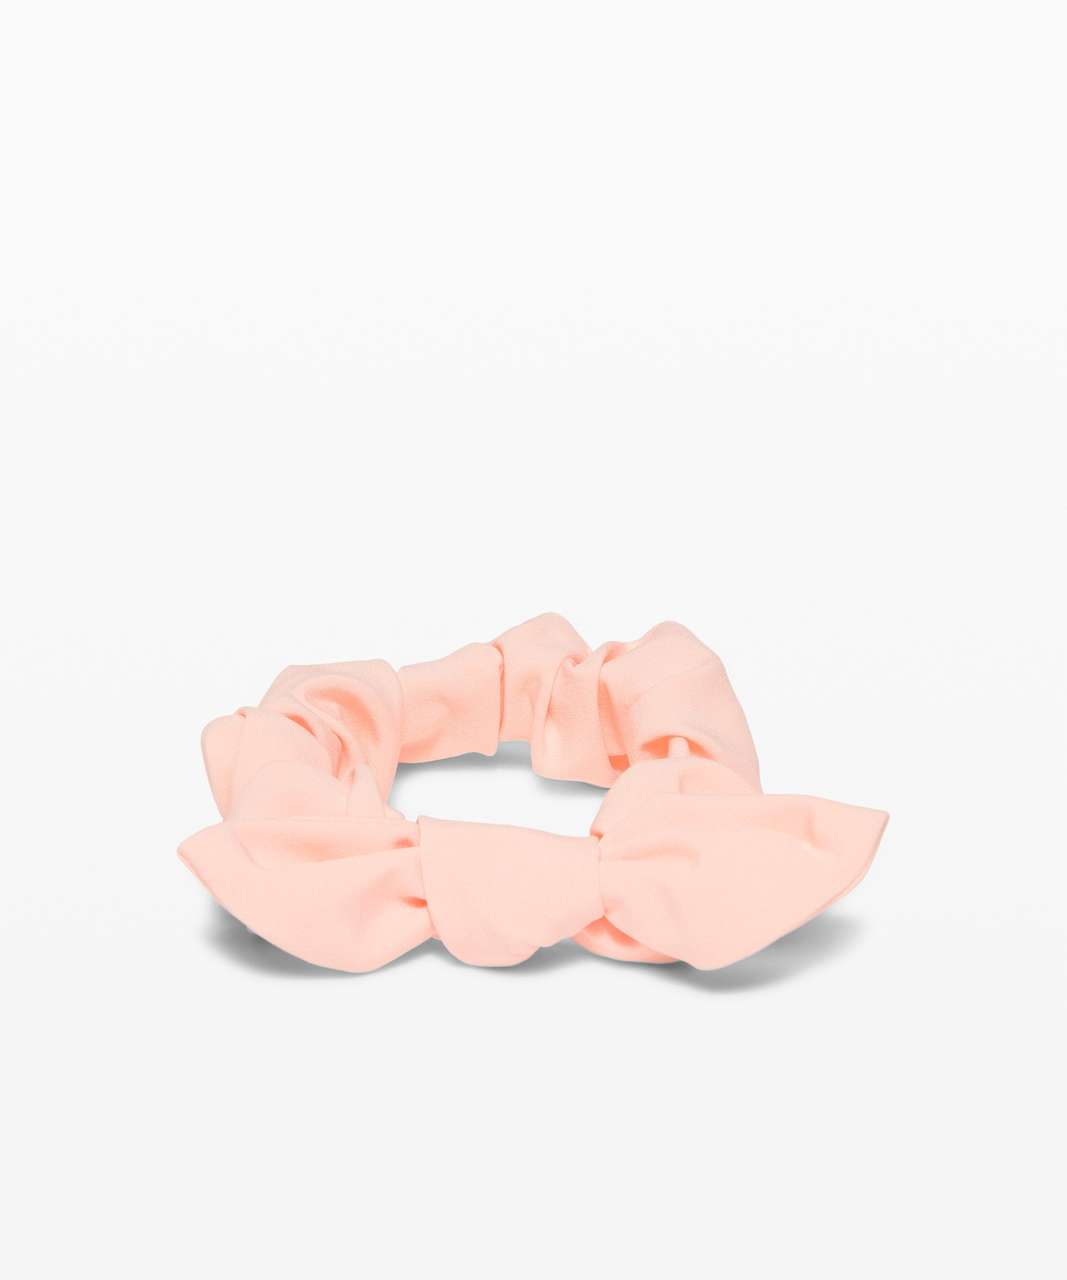 Lululemon Uplifting Scrunchie *Bow - Ballet Slipper